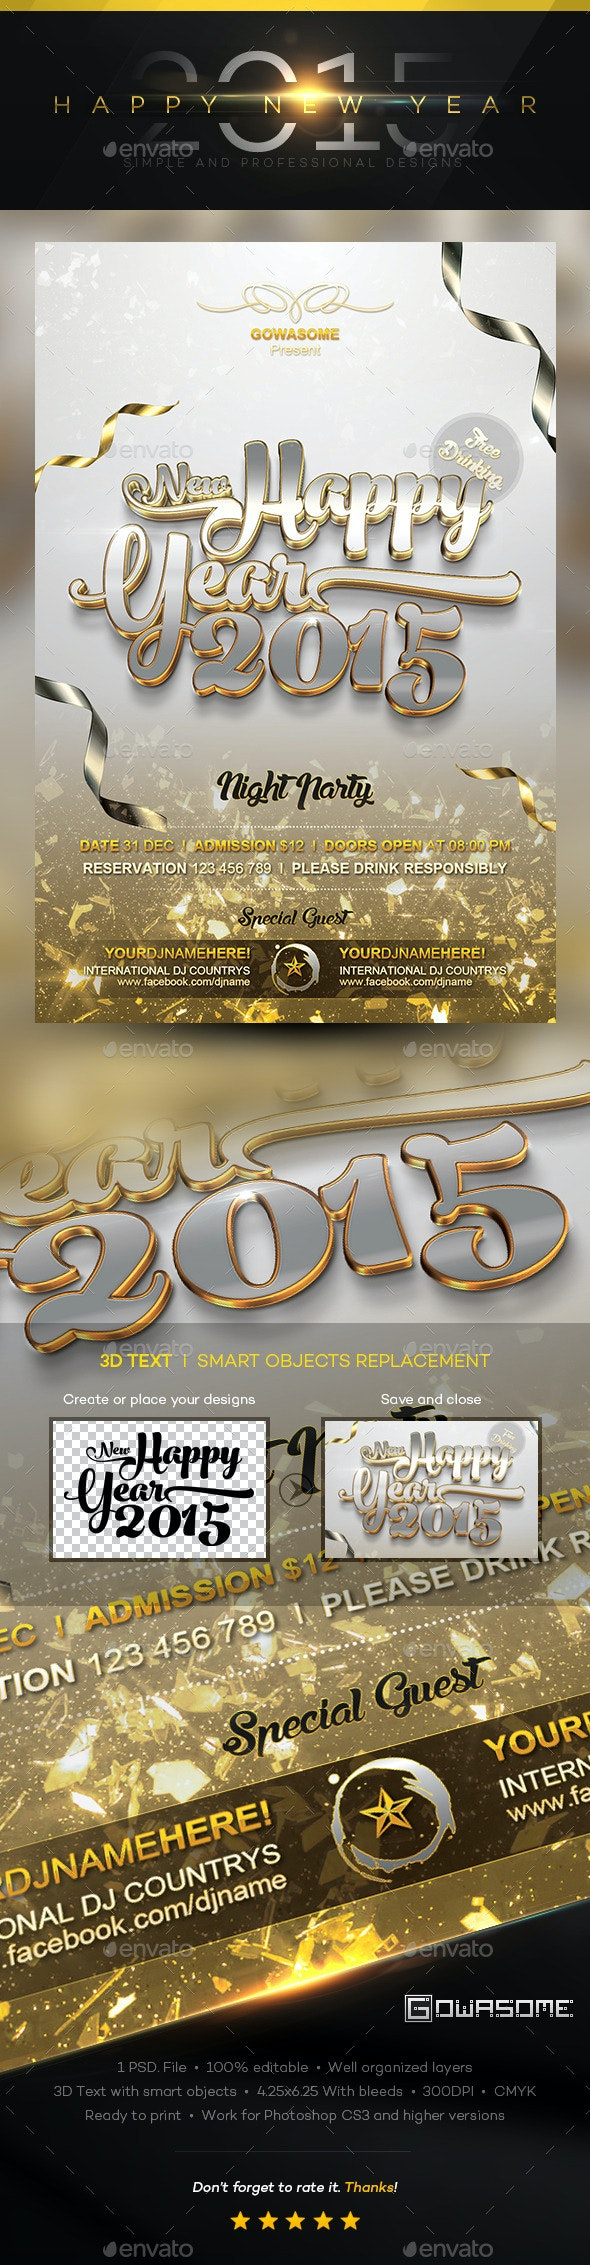 Happy New Year 2015 Flyer - Events Flyers